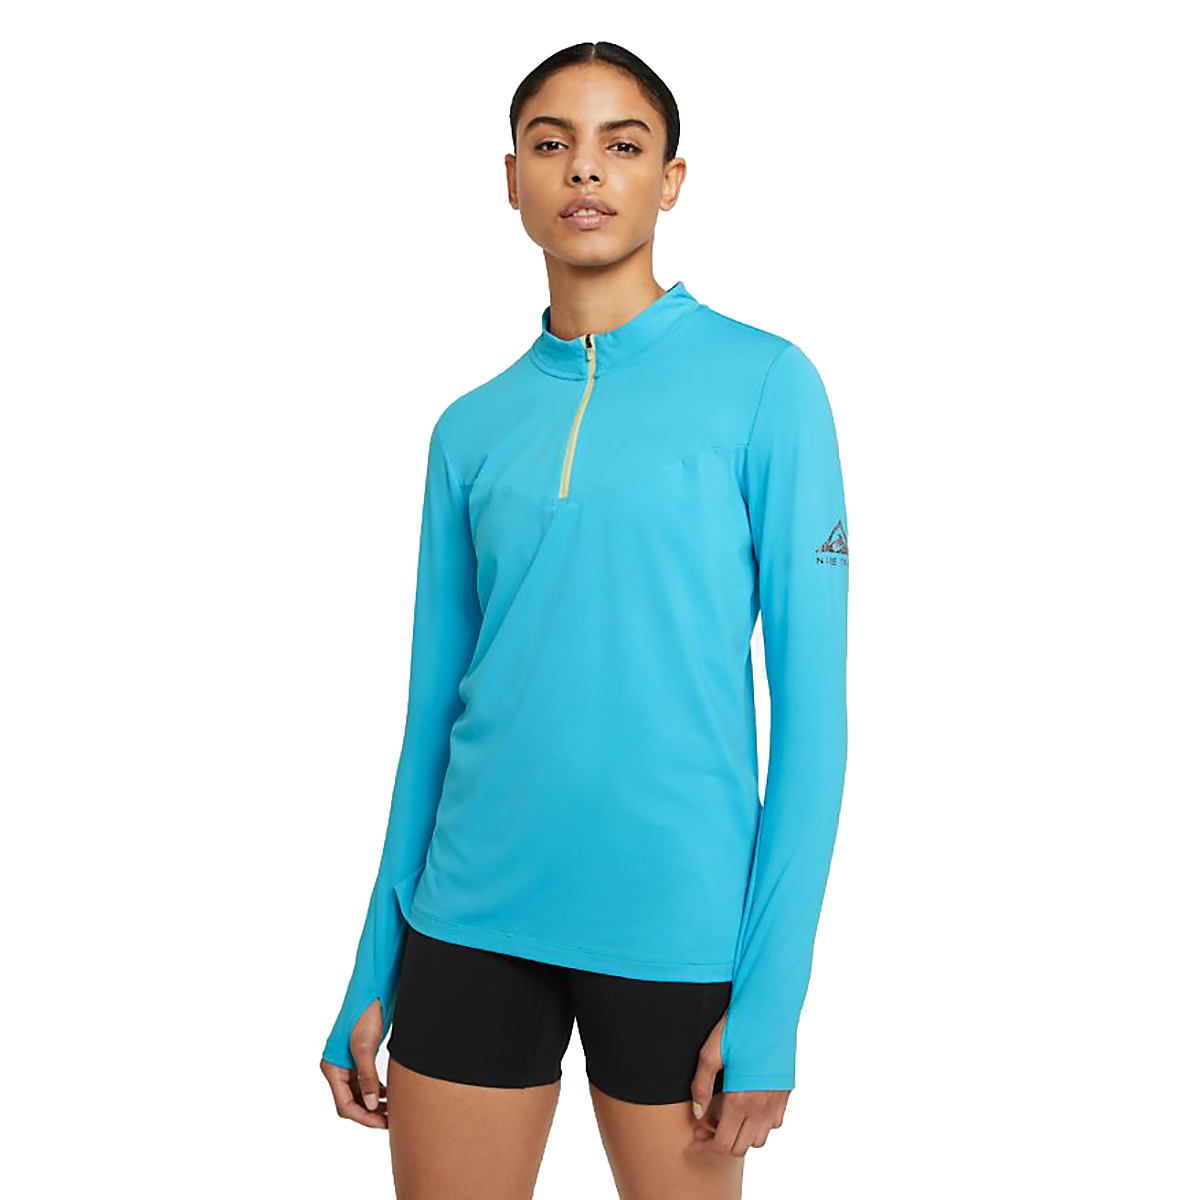 Women's Nike Element Trail Running Midlayer - Color: Chlorine Blue/Reflective Silv - Size: XS, Chlorine Blue/Reflective Silv, large, image 1